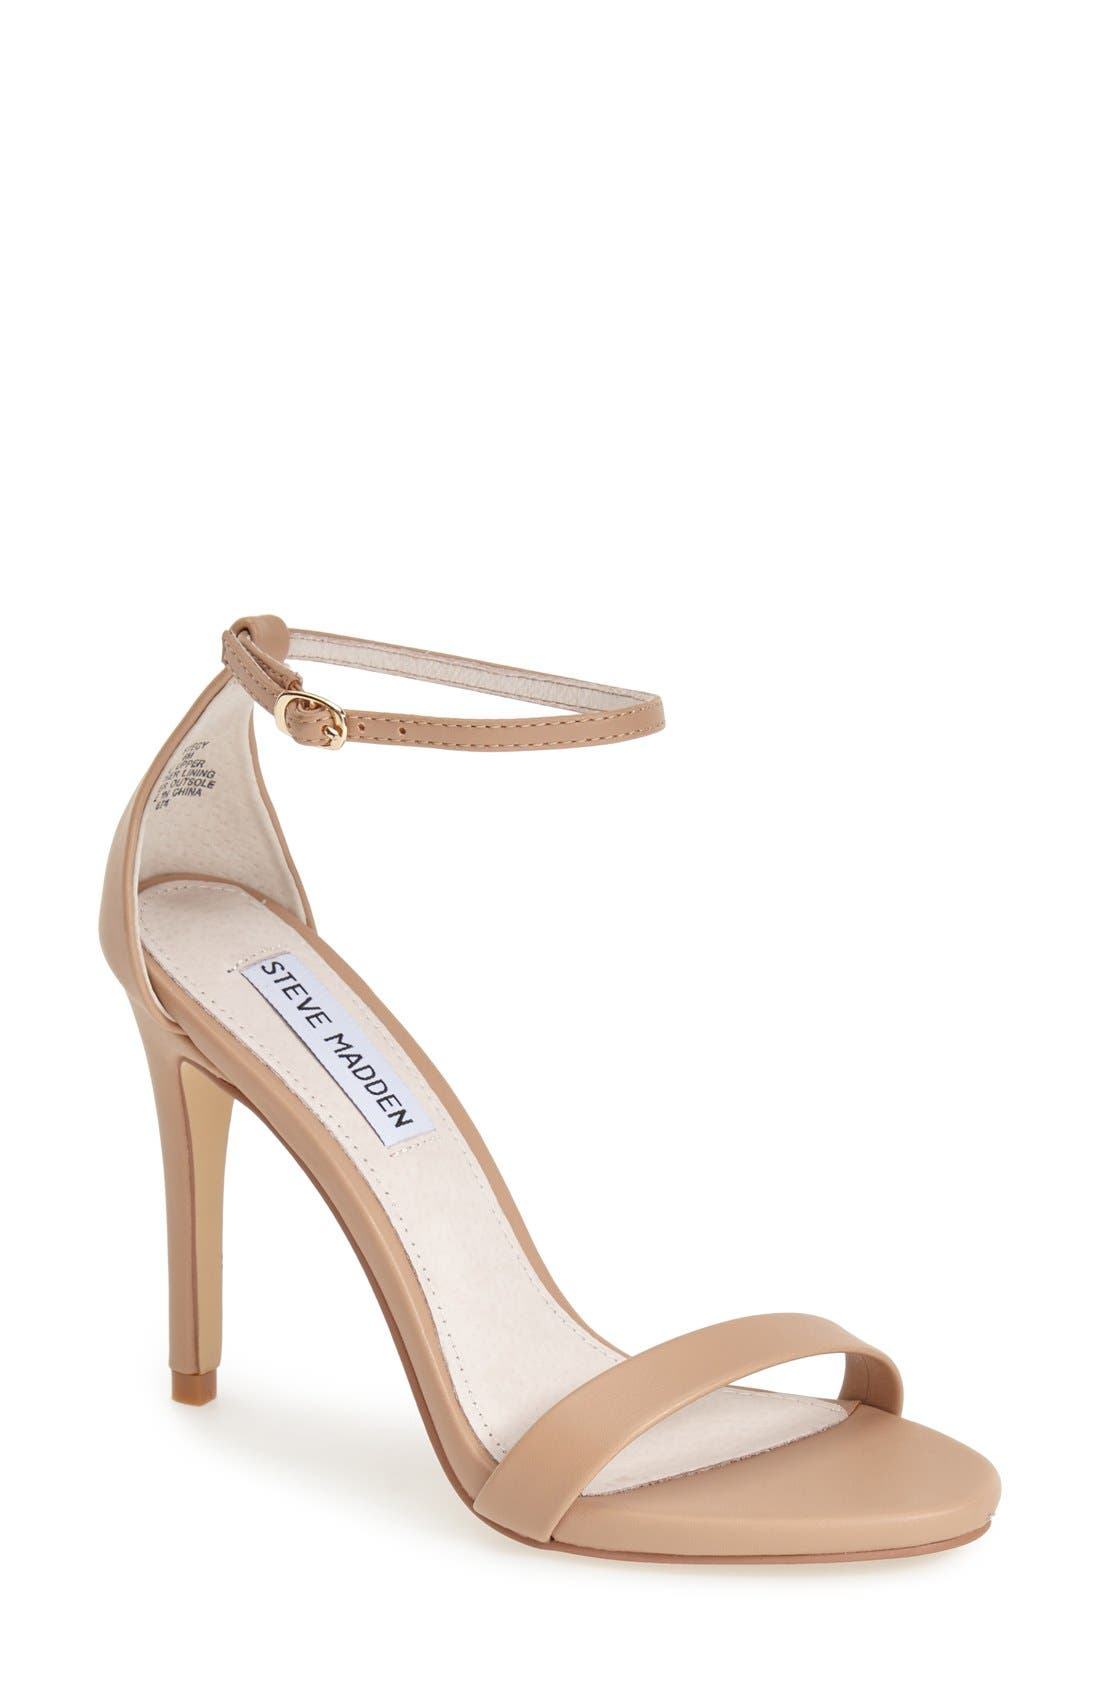 Alternate Image 1 Selected - Steve Madden Stecy Sandal (Women)